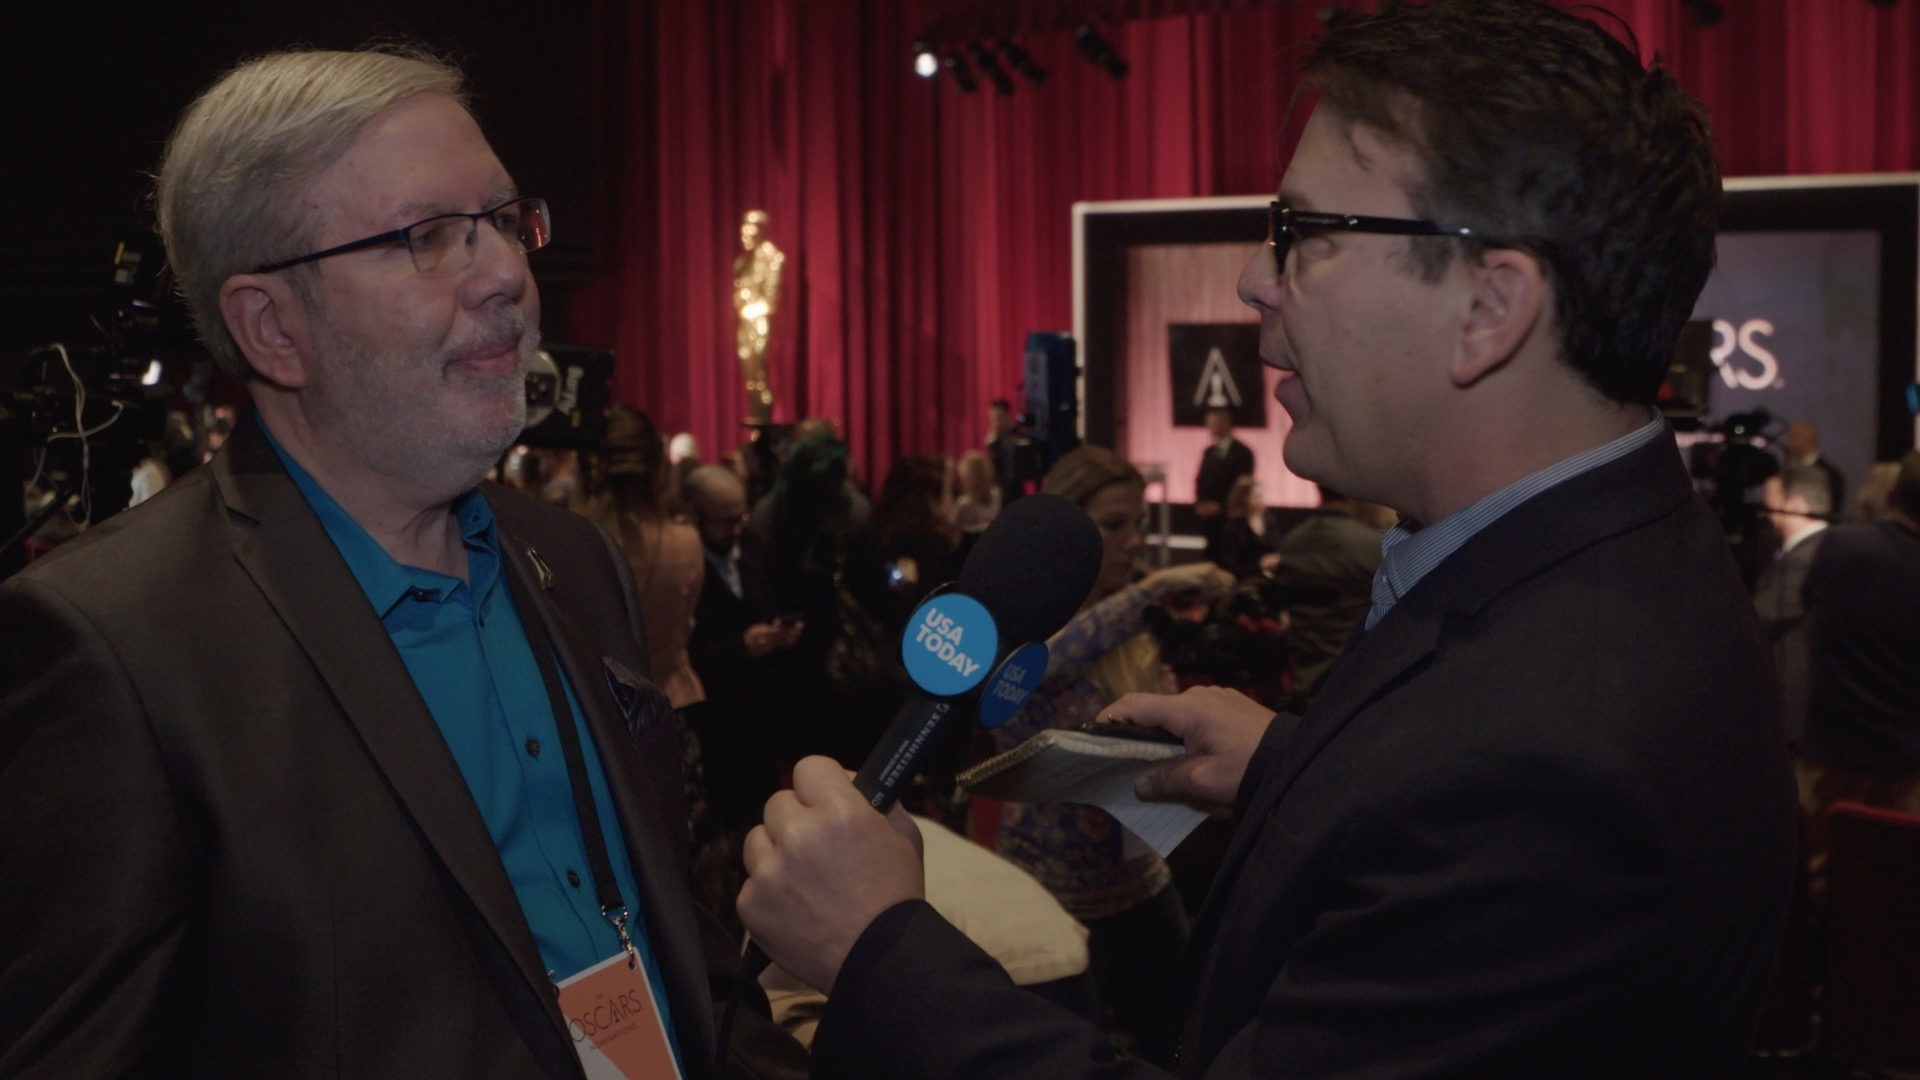 Film Critic Leonard Maltin weighs in on Oscars nominations